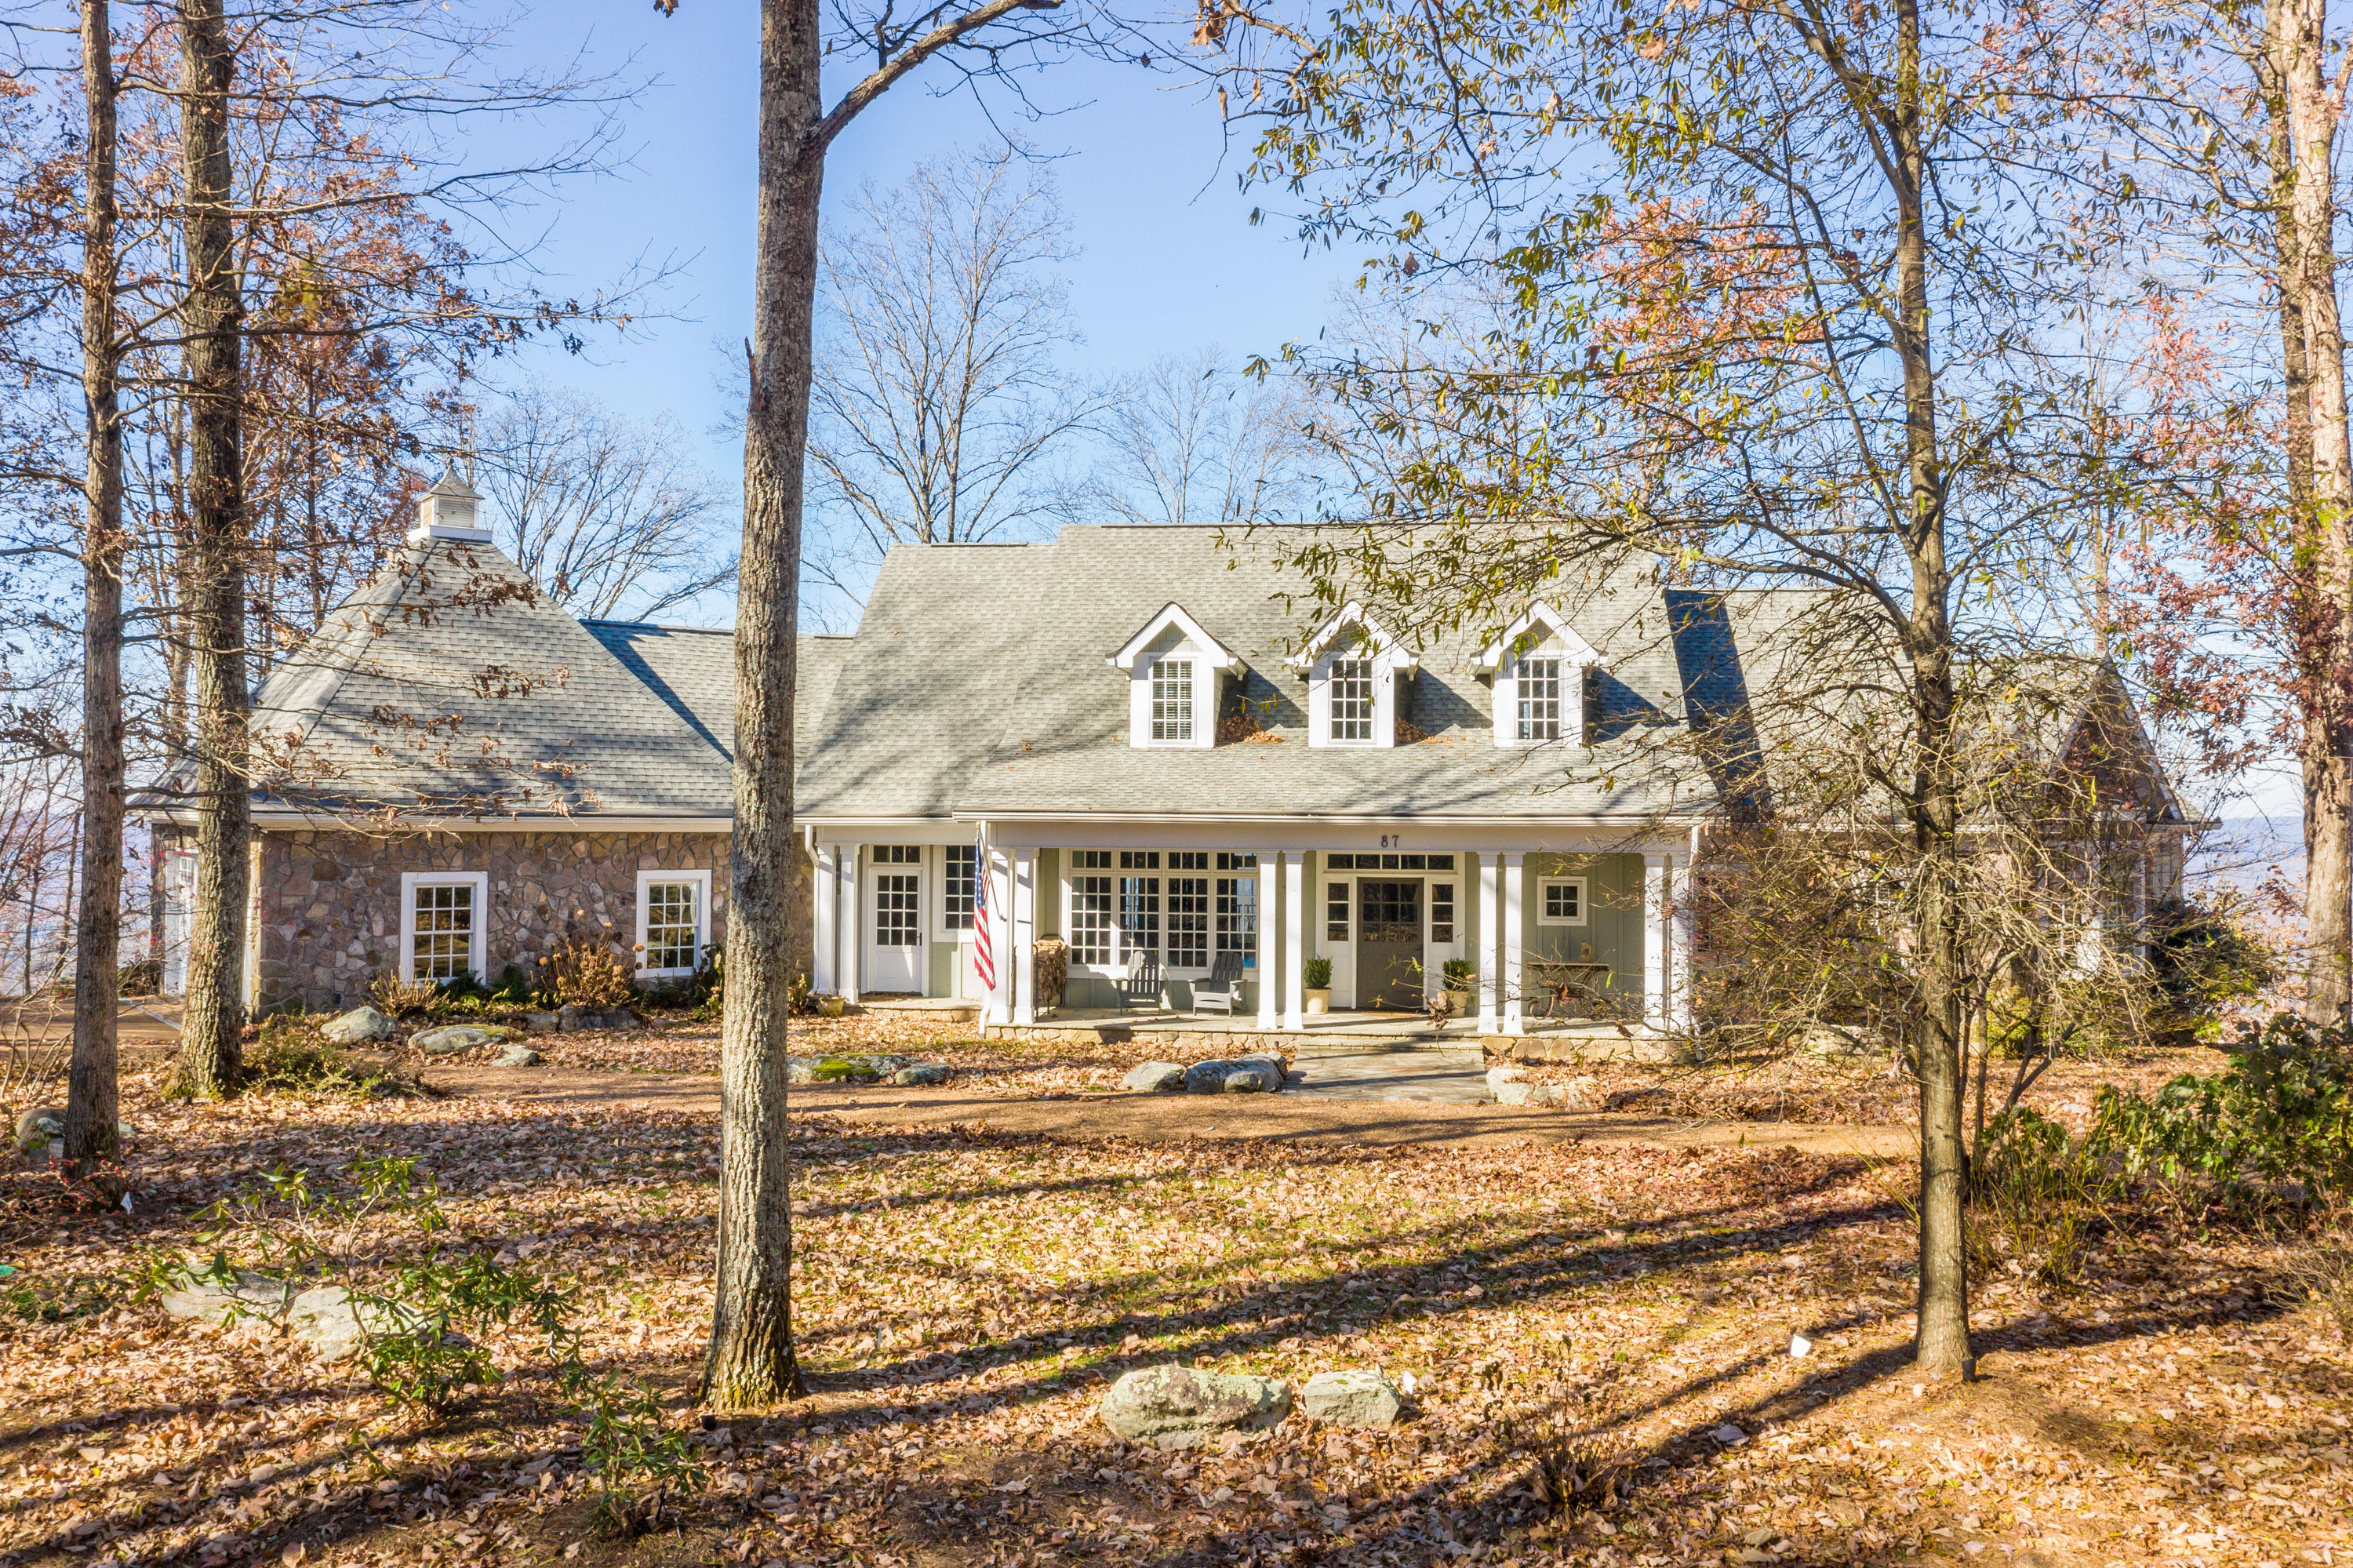 87 Brow Lake Rd, Lookout Mountain, GA 30750